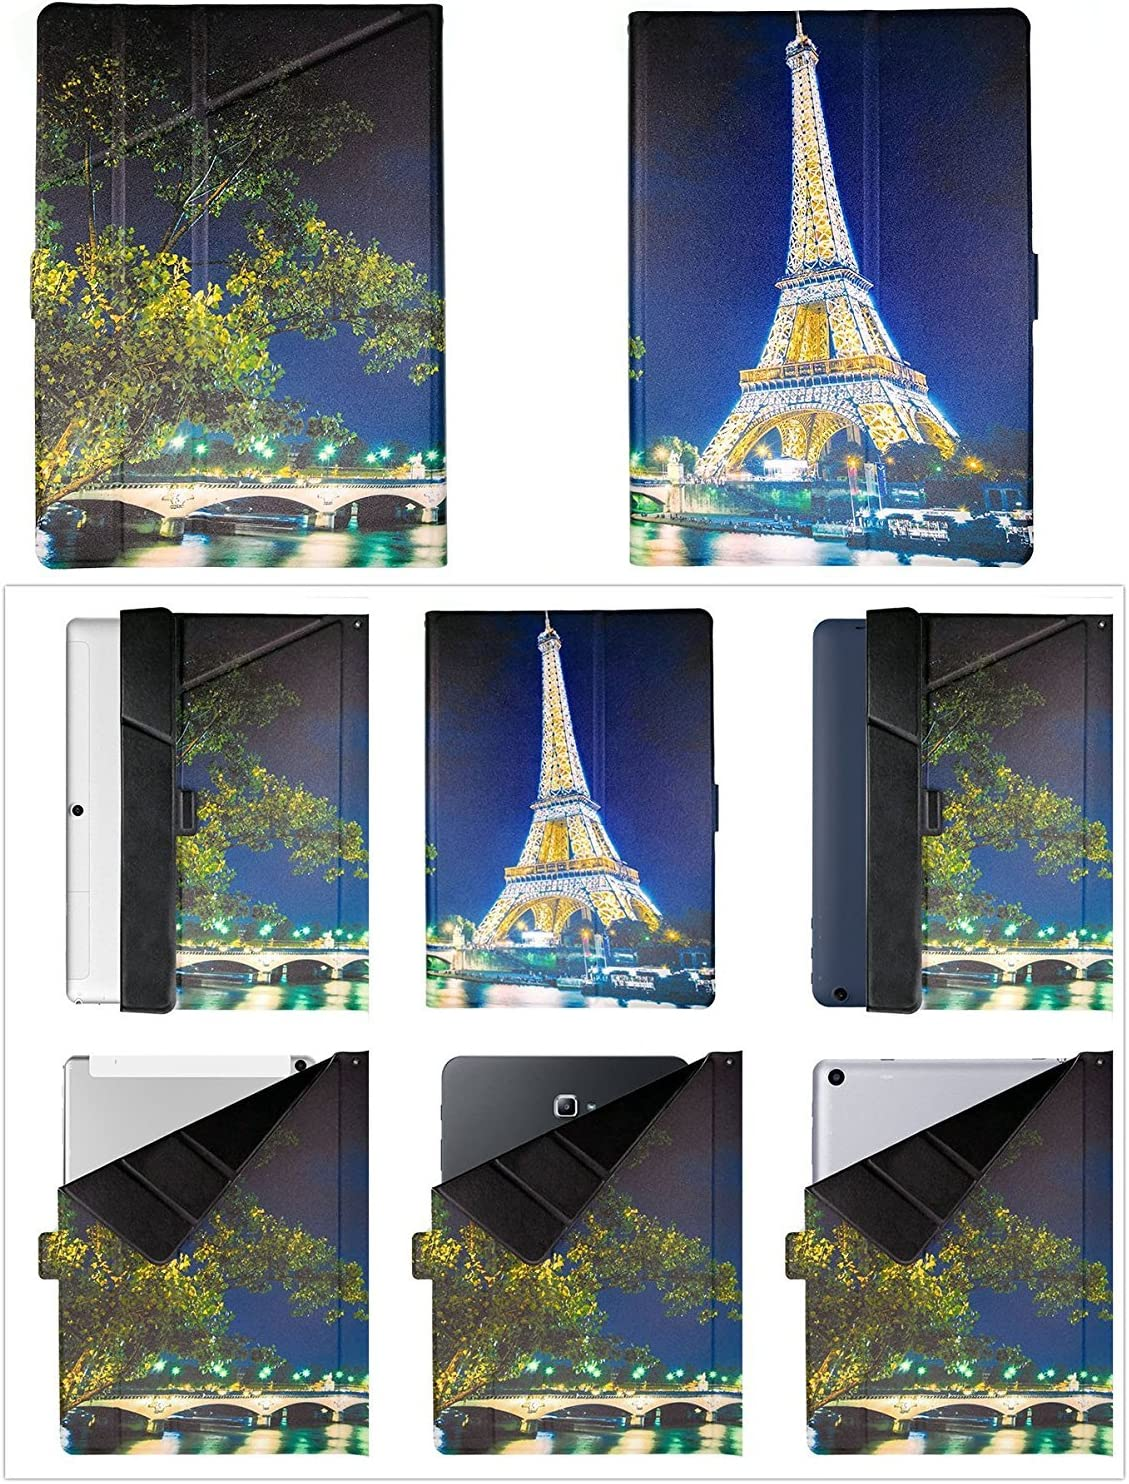 Lovewlb Tablet Custodia per Acer Iconia One 10 B3-A32 Custodia Pelle Stand Case Cover HS